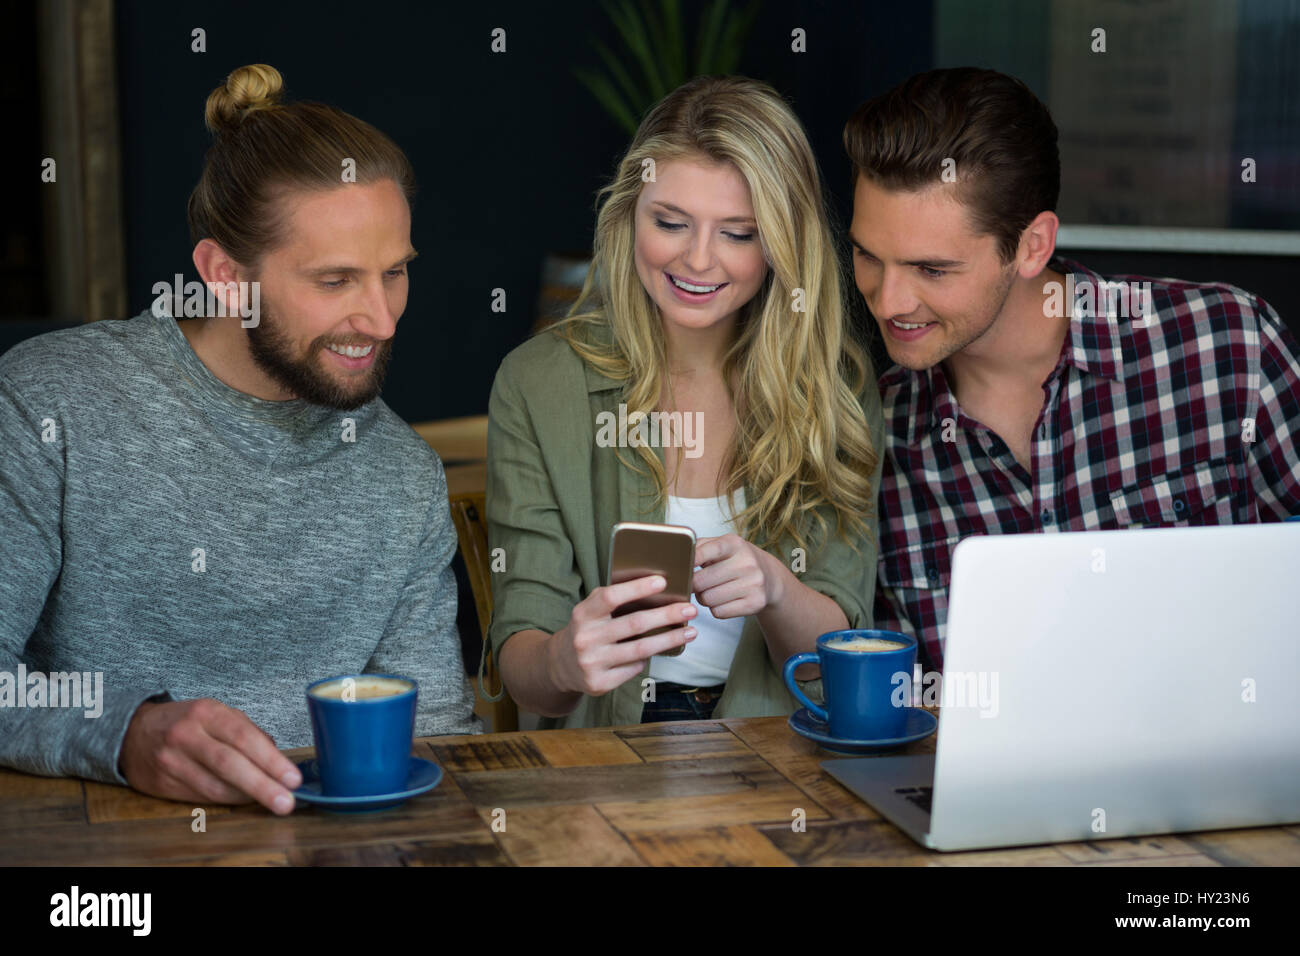 Smiling young friends using smart phone at table in cafeteria - Stock Image